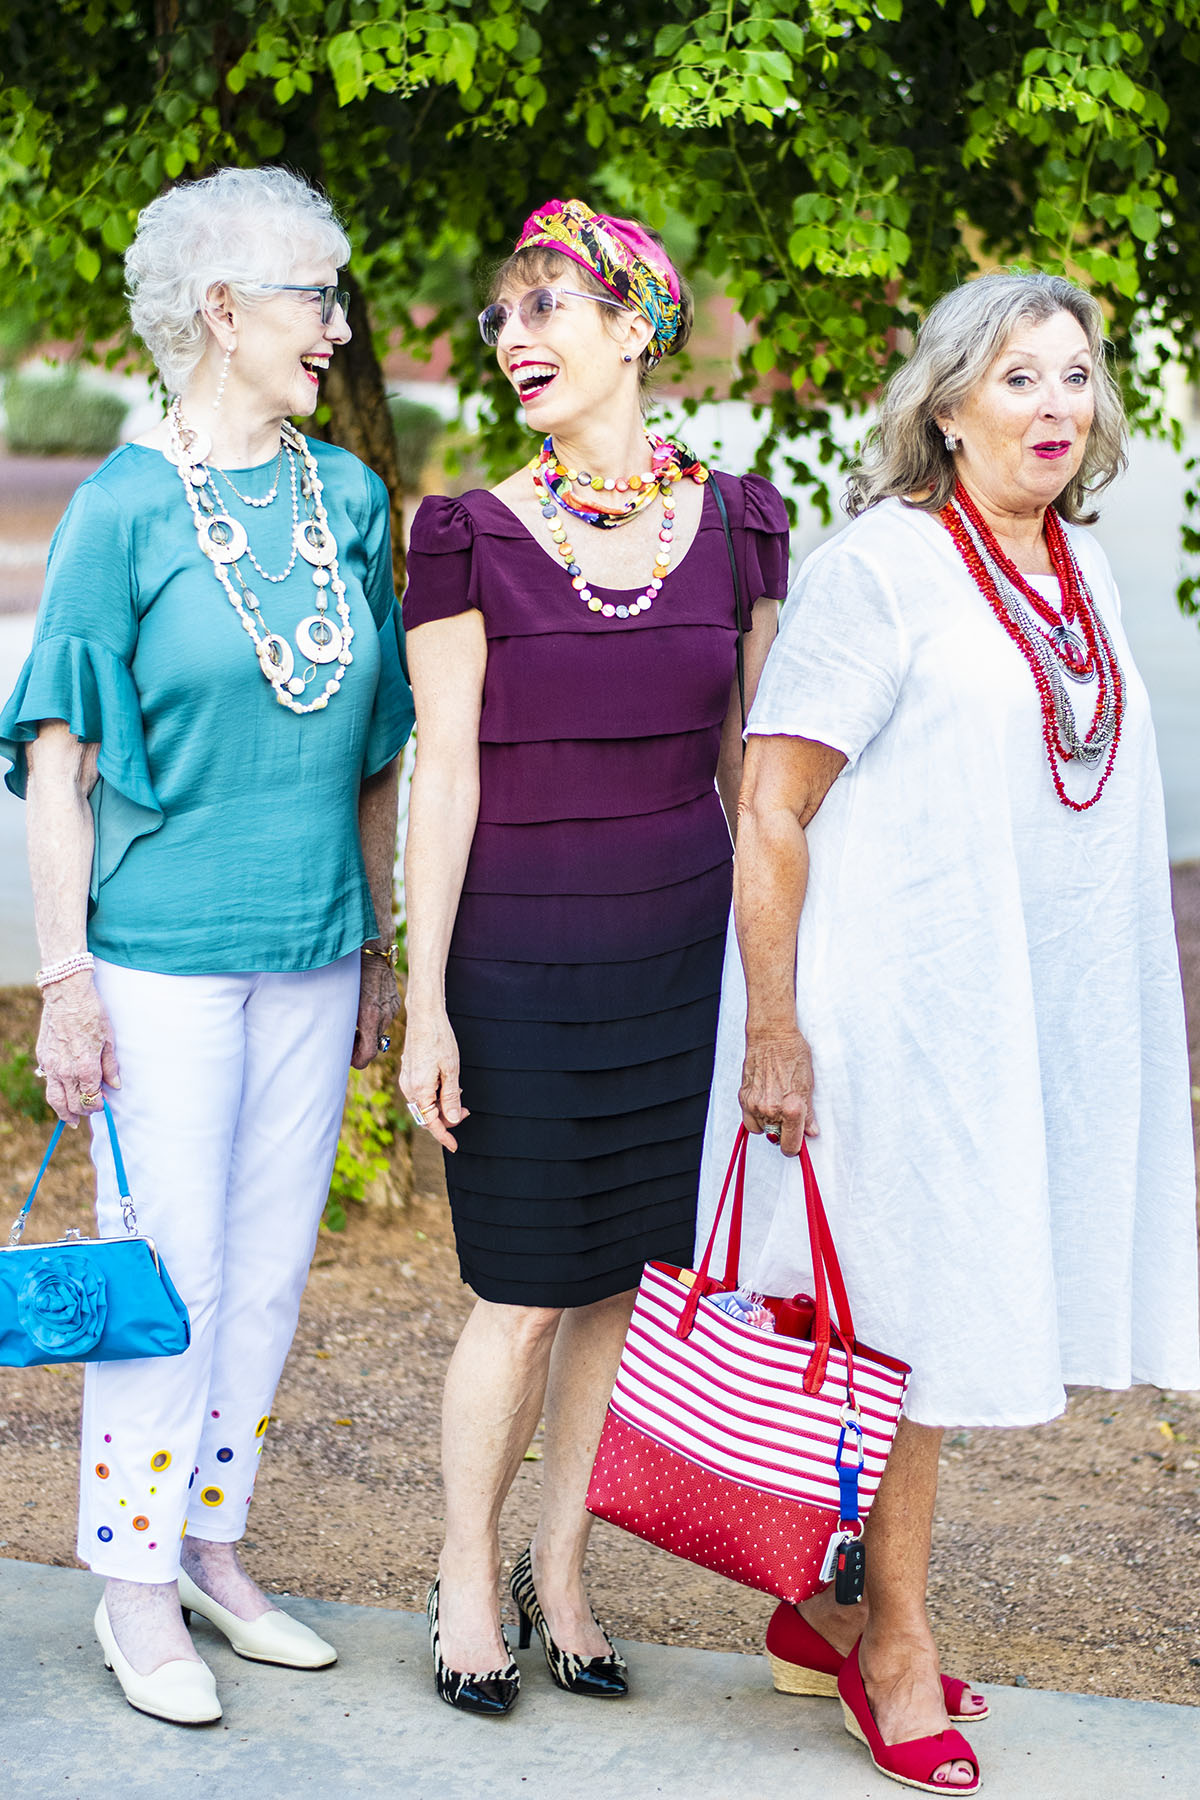 Layering Necklace Ideas: Finding Tips and Tricks to Make it Successful